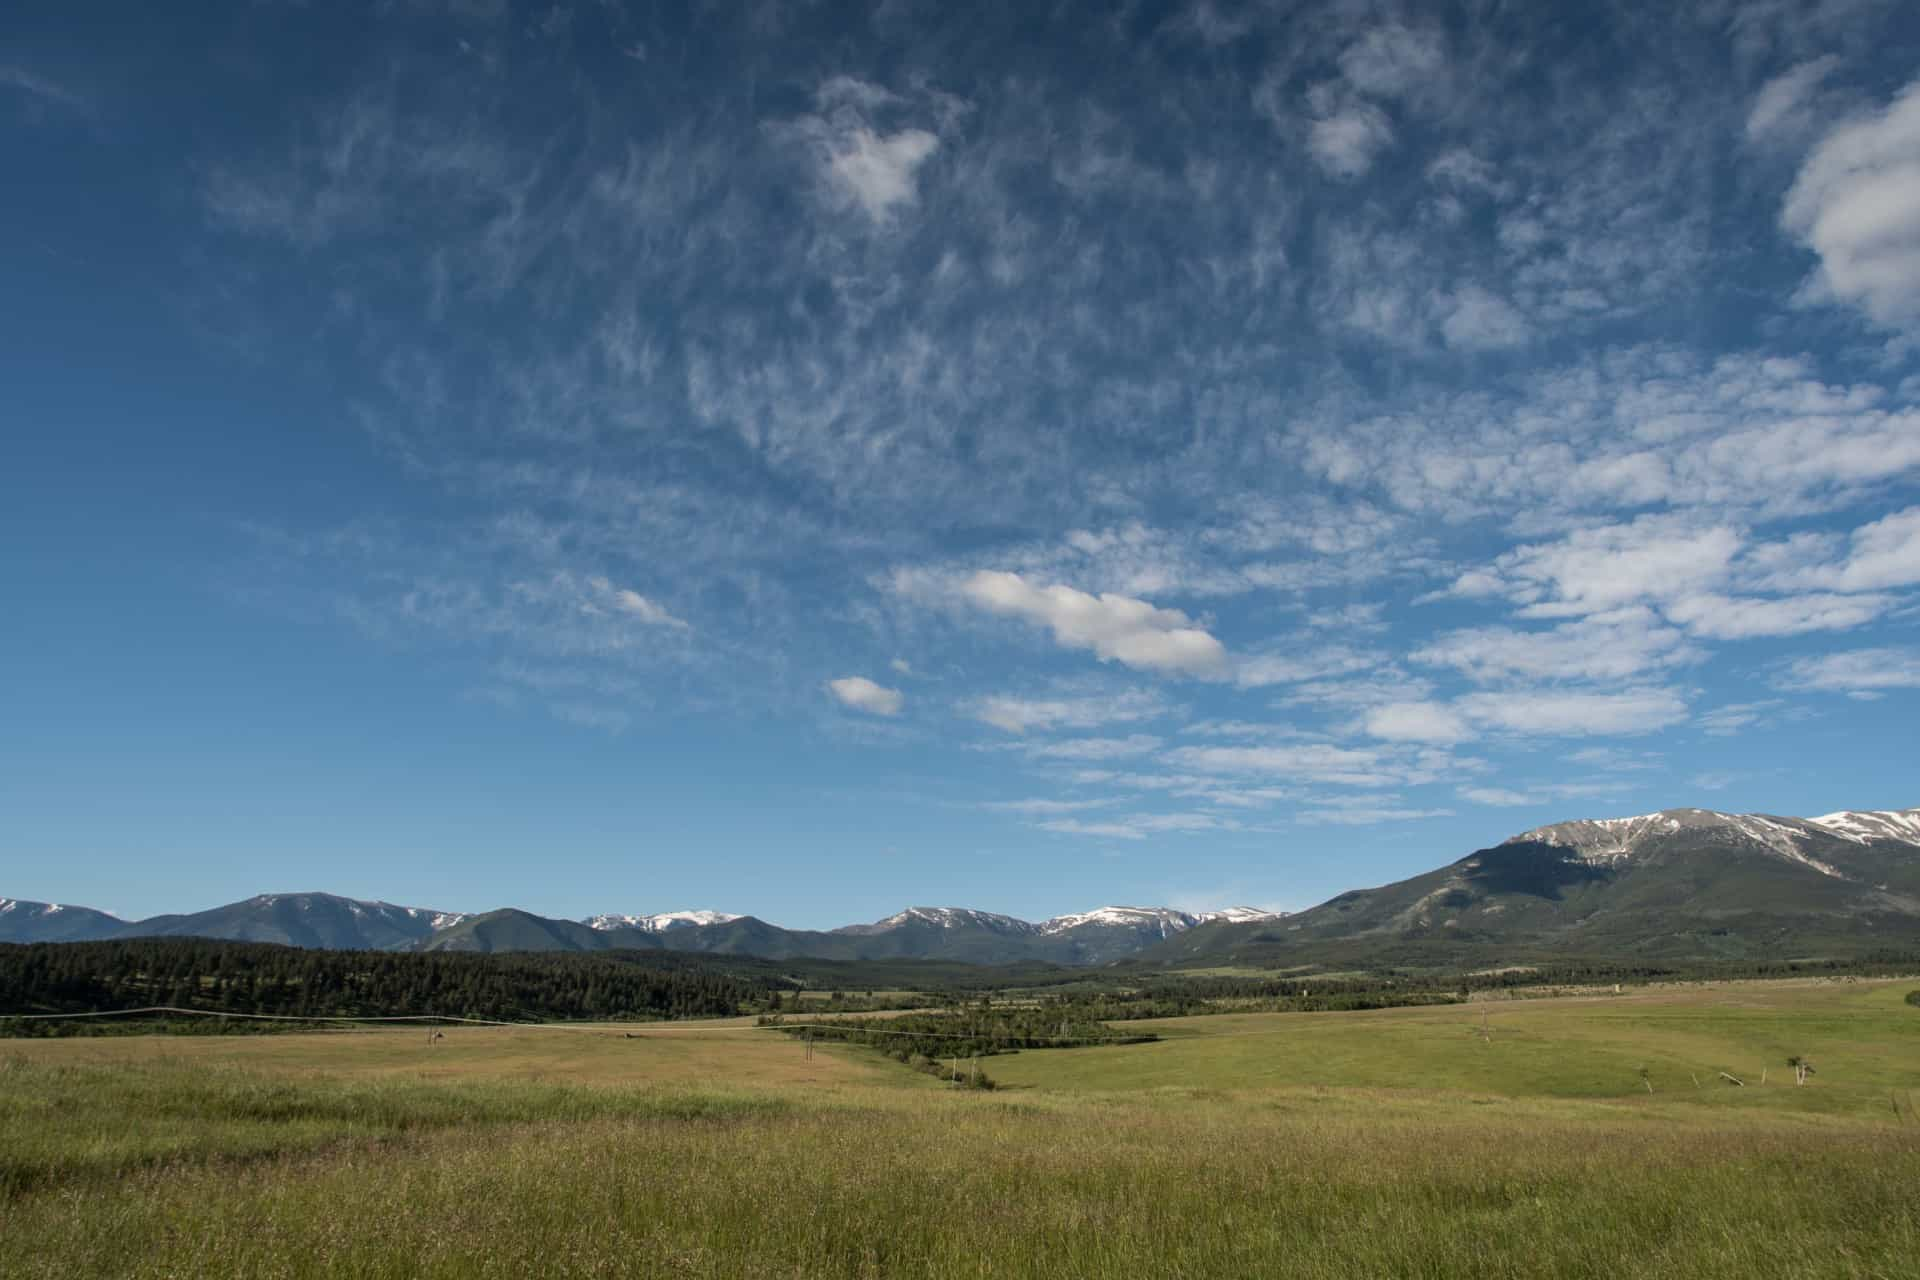 elk ridge ranch land for sale montana mountains view pretty